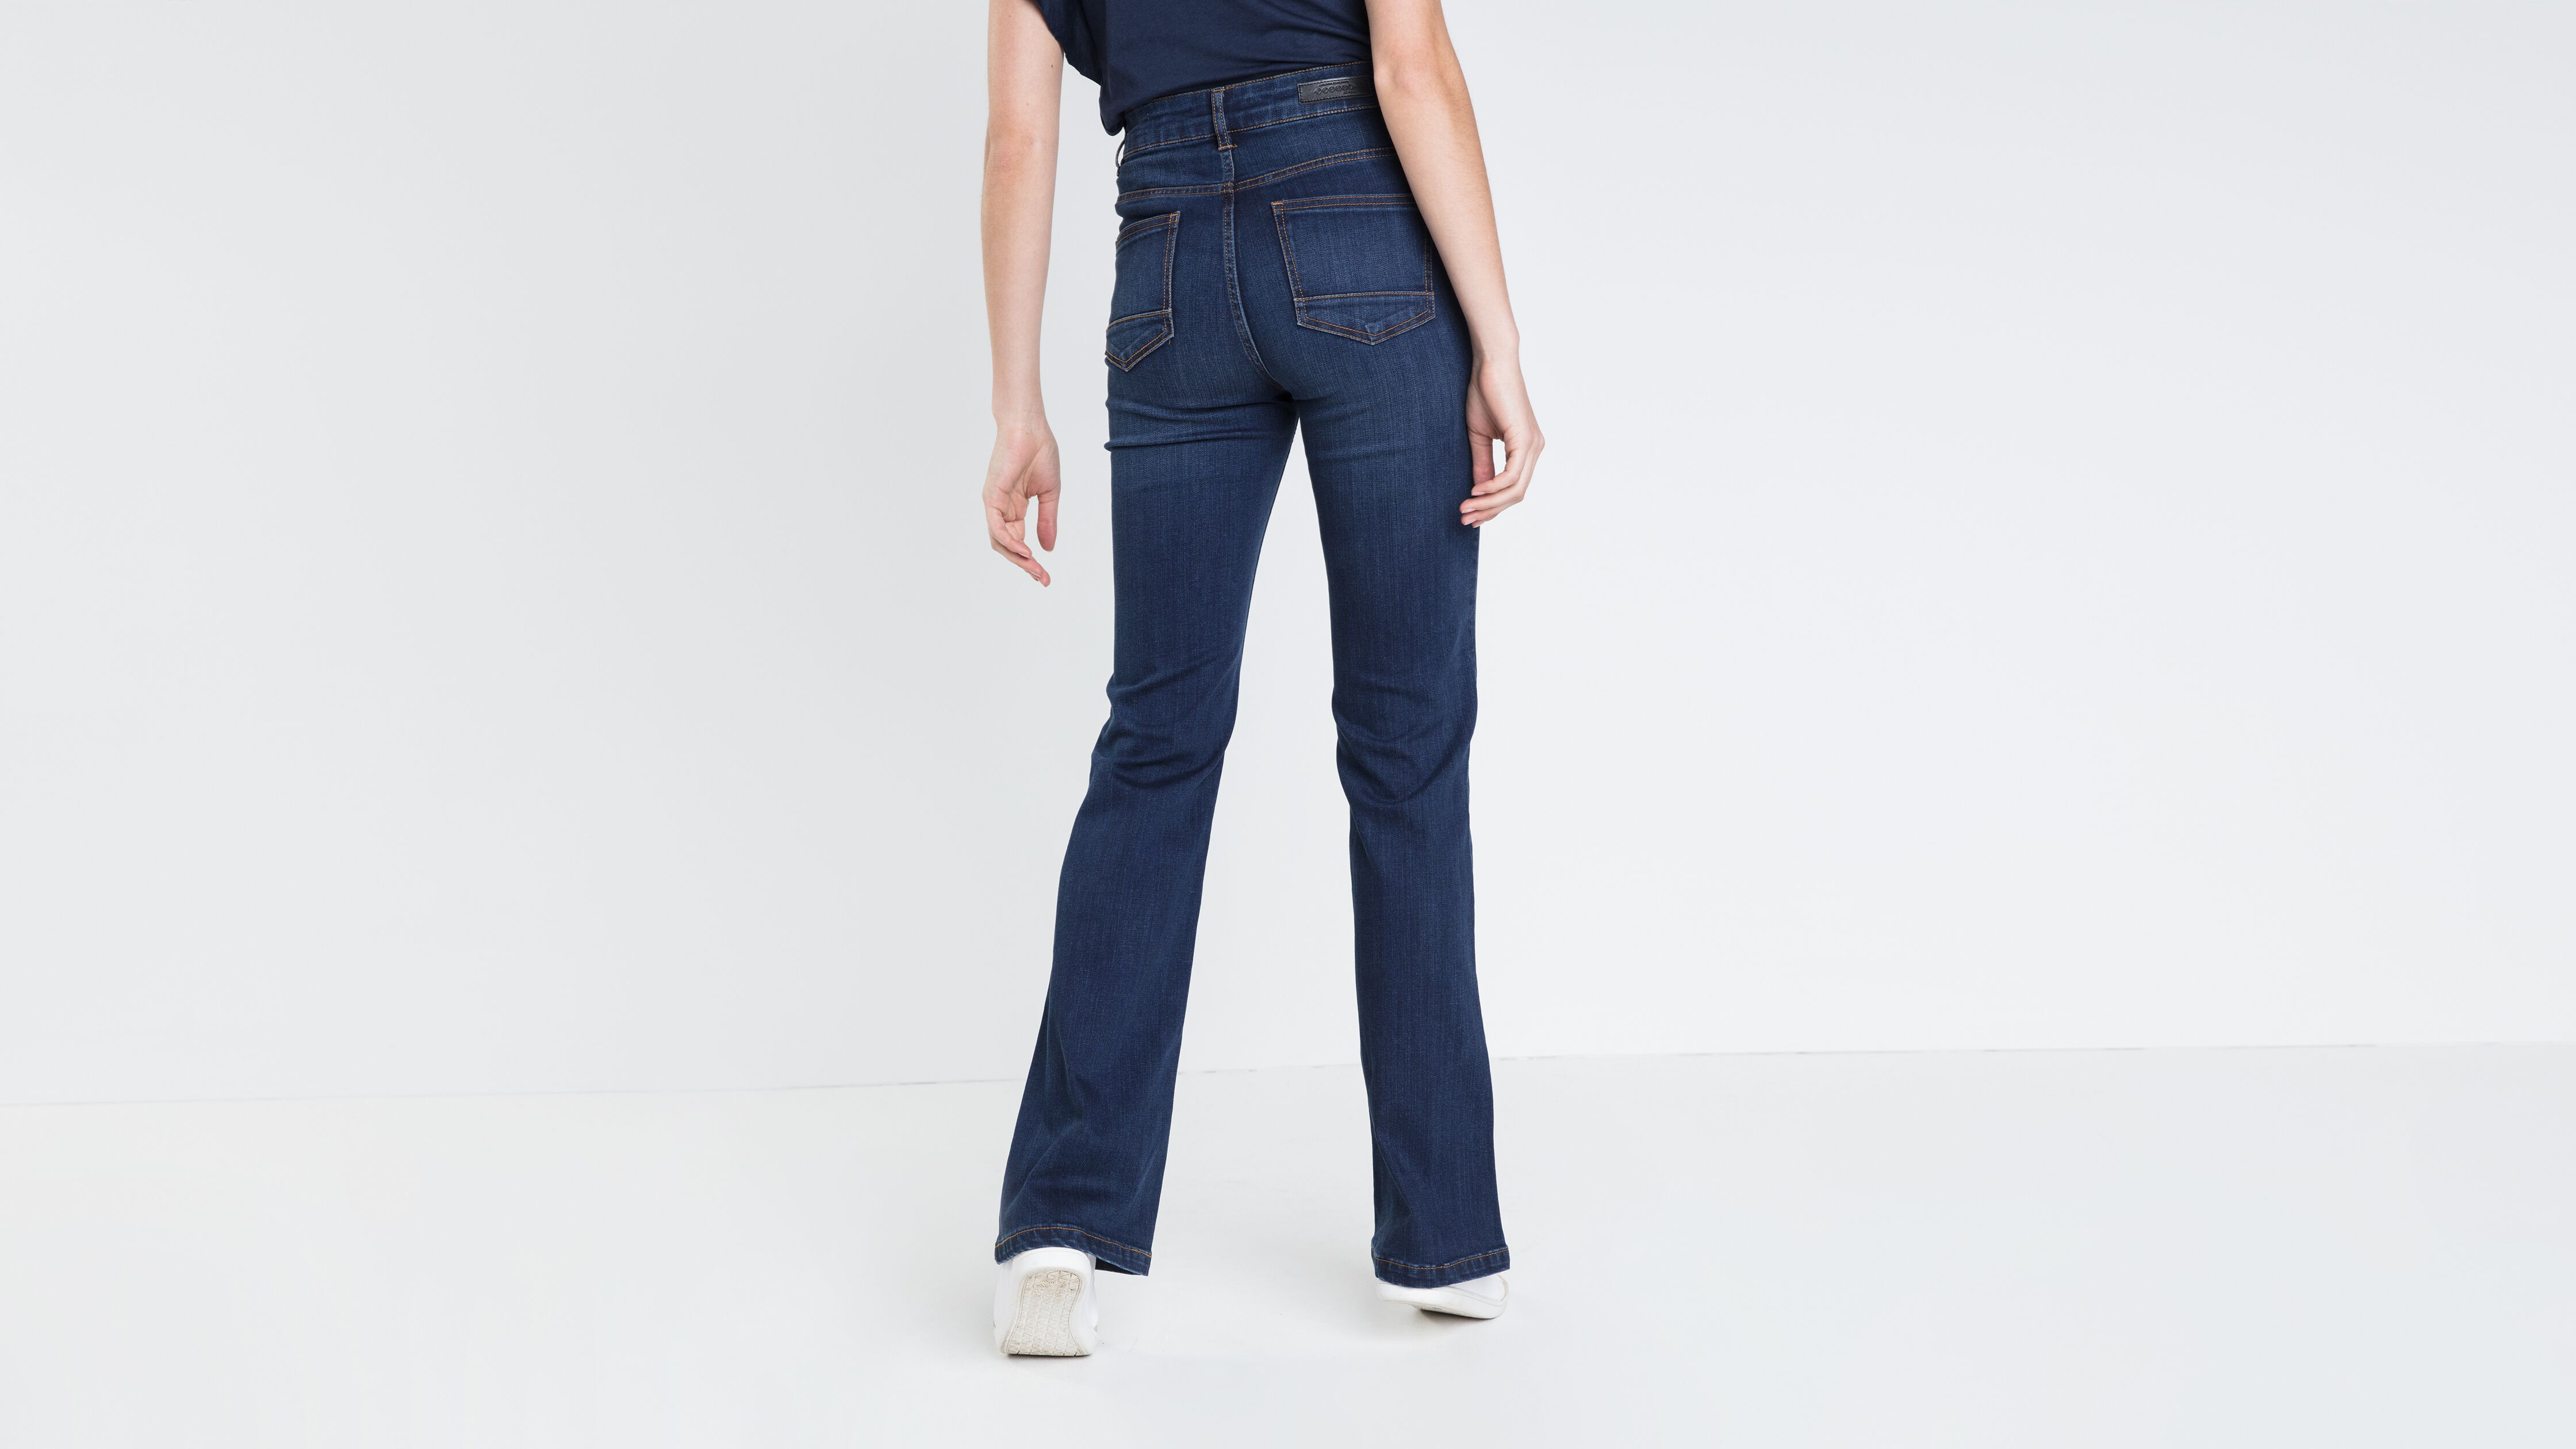 jeans-bootcut-femme-taille-haute-used-denim-brut-b-36125292151020241.jpg 172b705c2a5